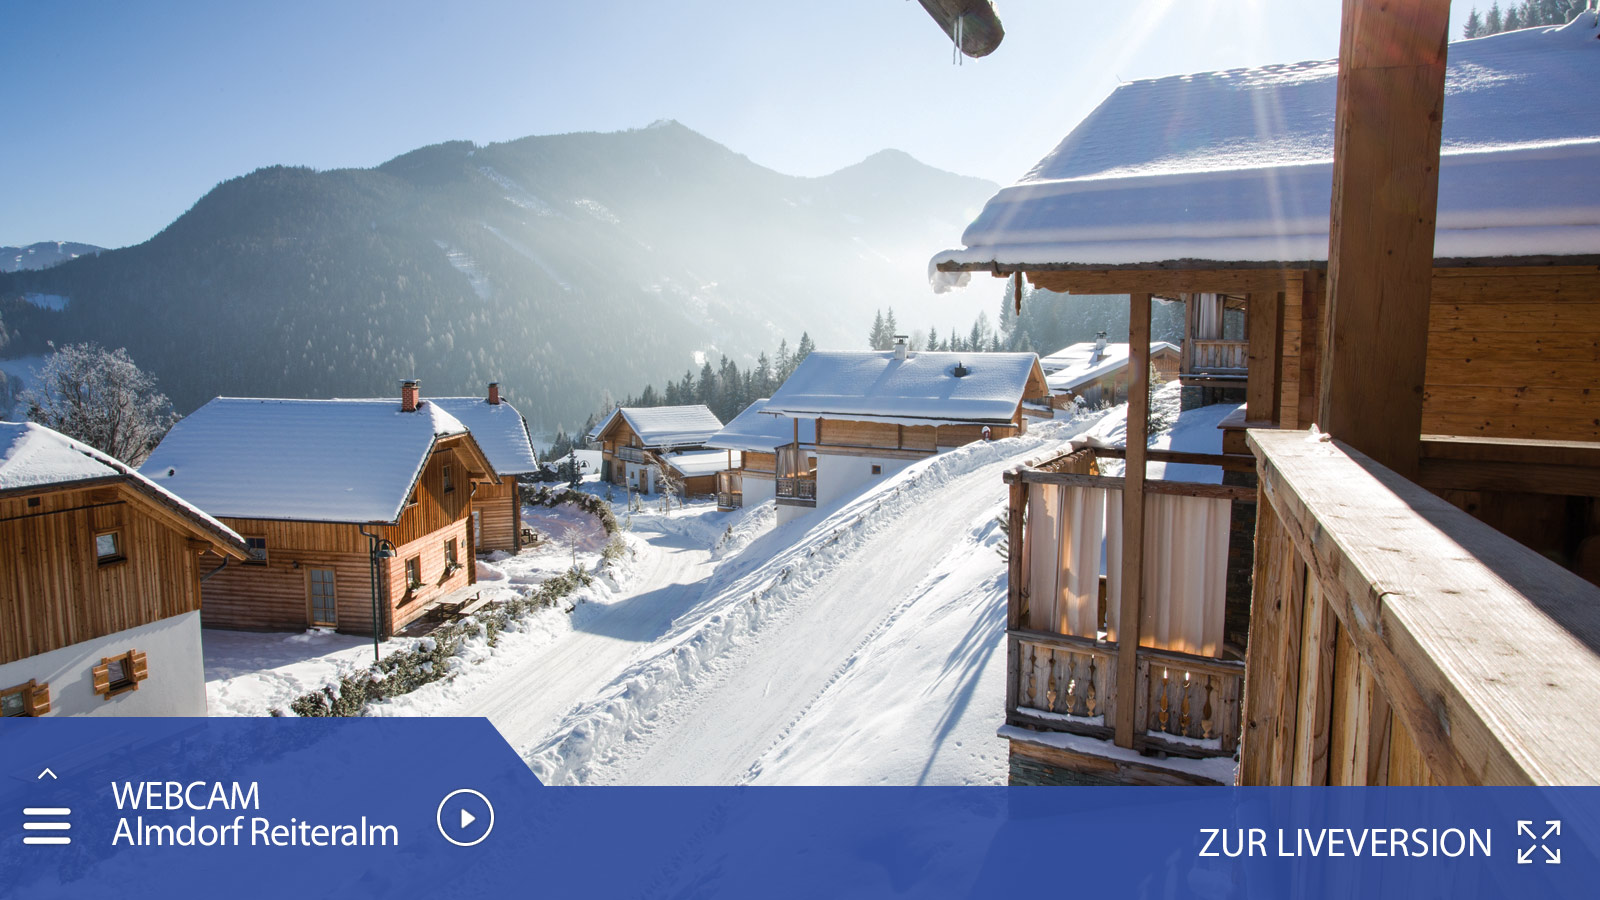 Live webcam Almdorf Reiteralm - chalets and huts in Schladming